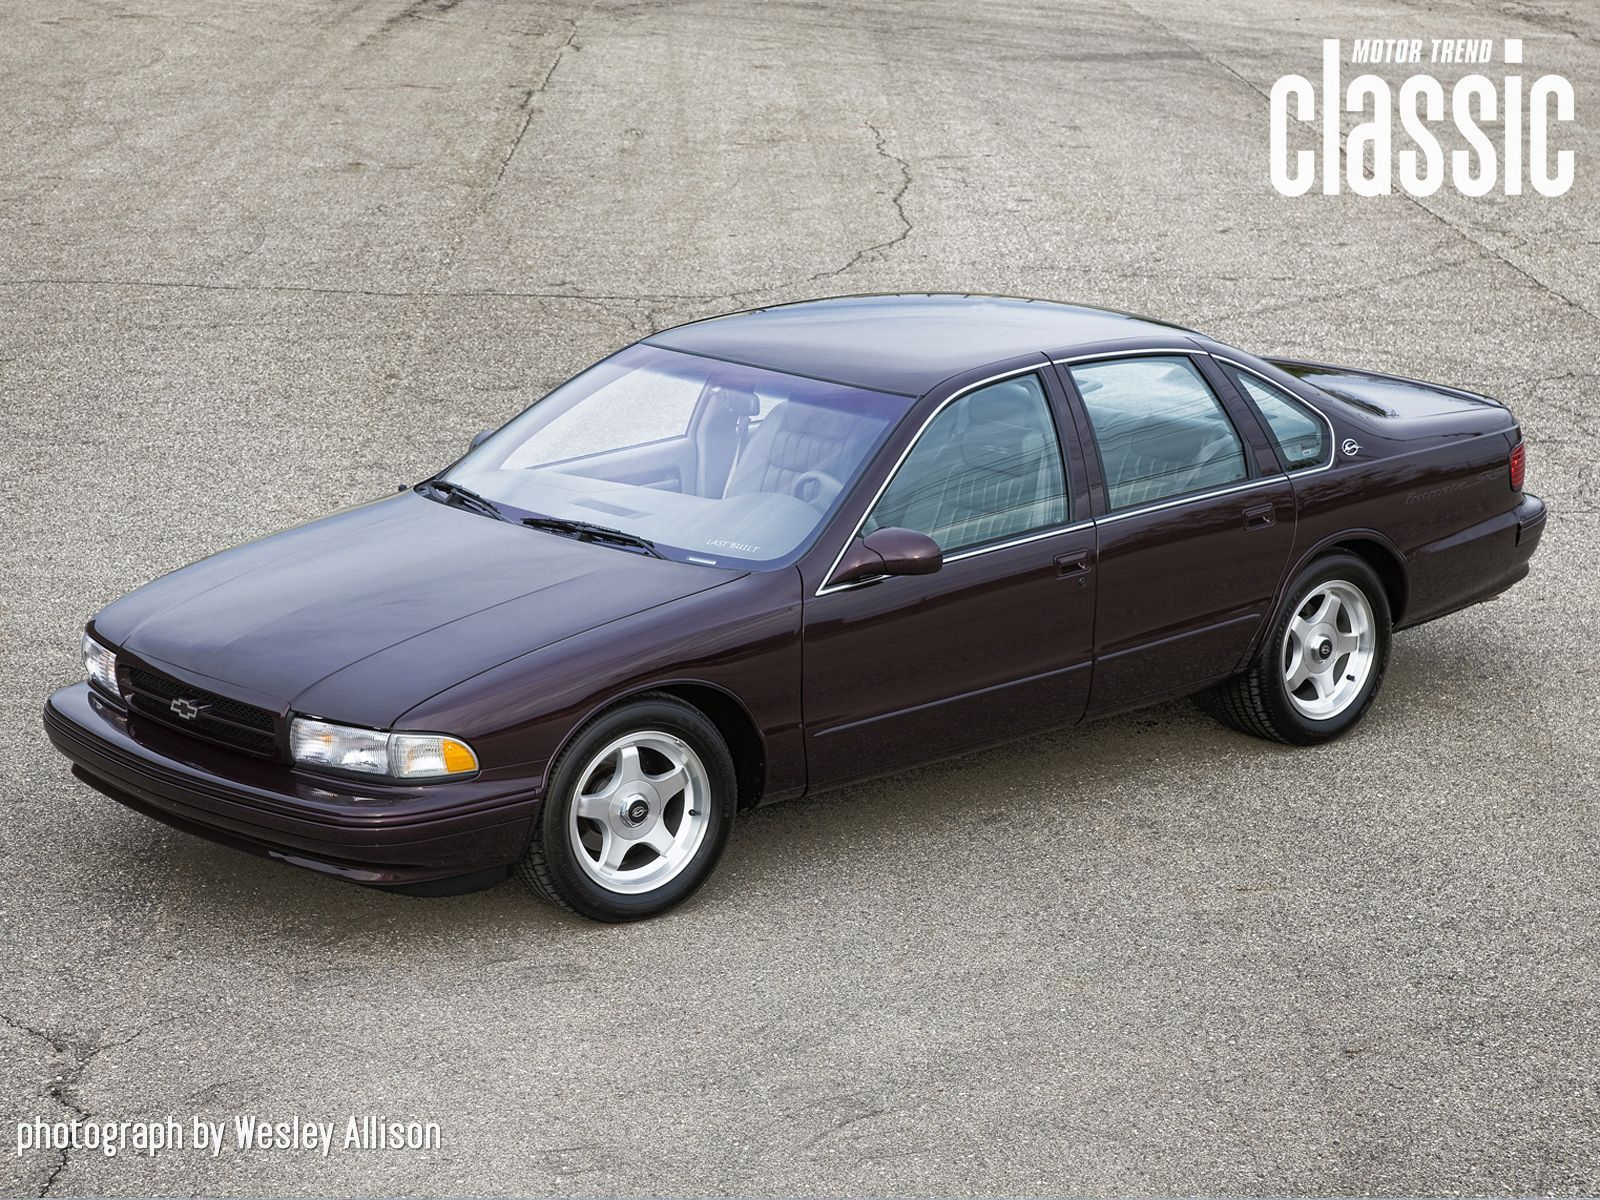 1996 chevy impala ss photographed by wesley allison